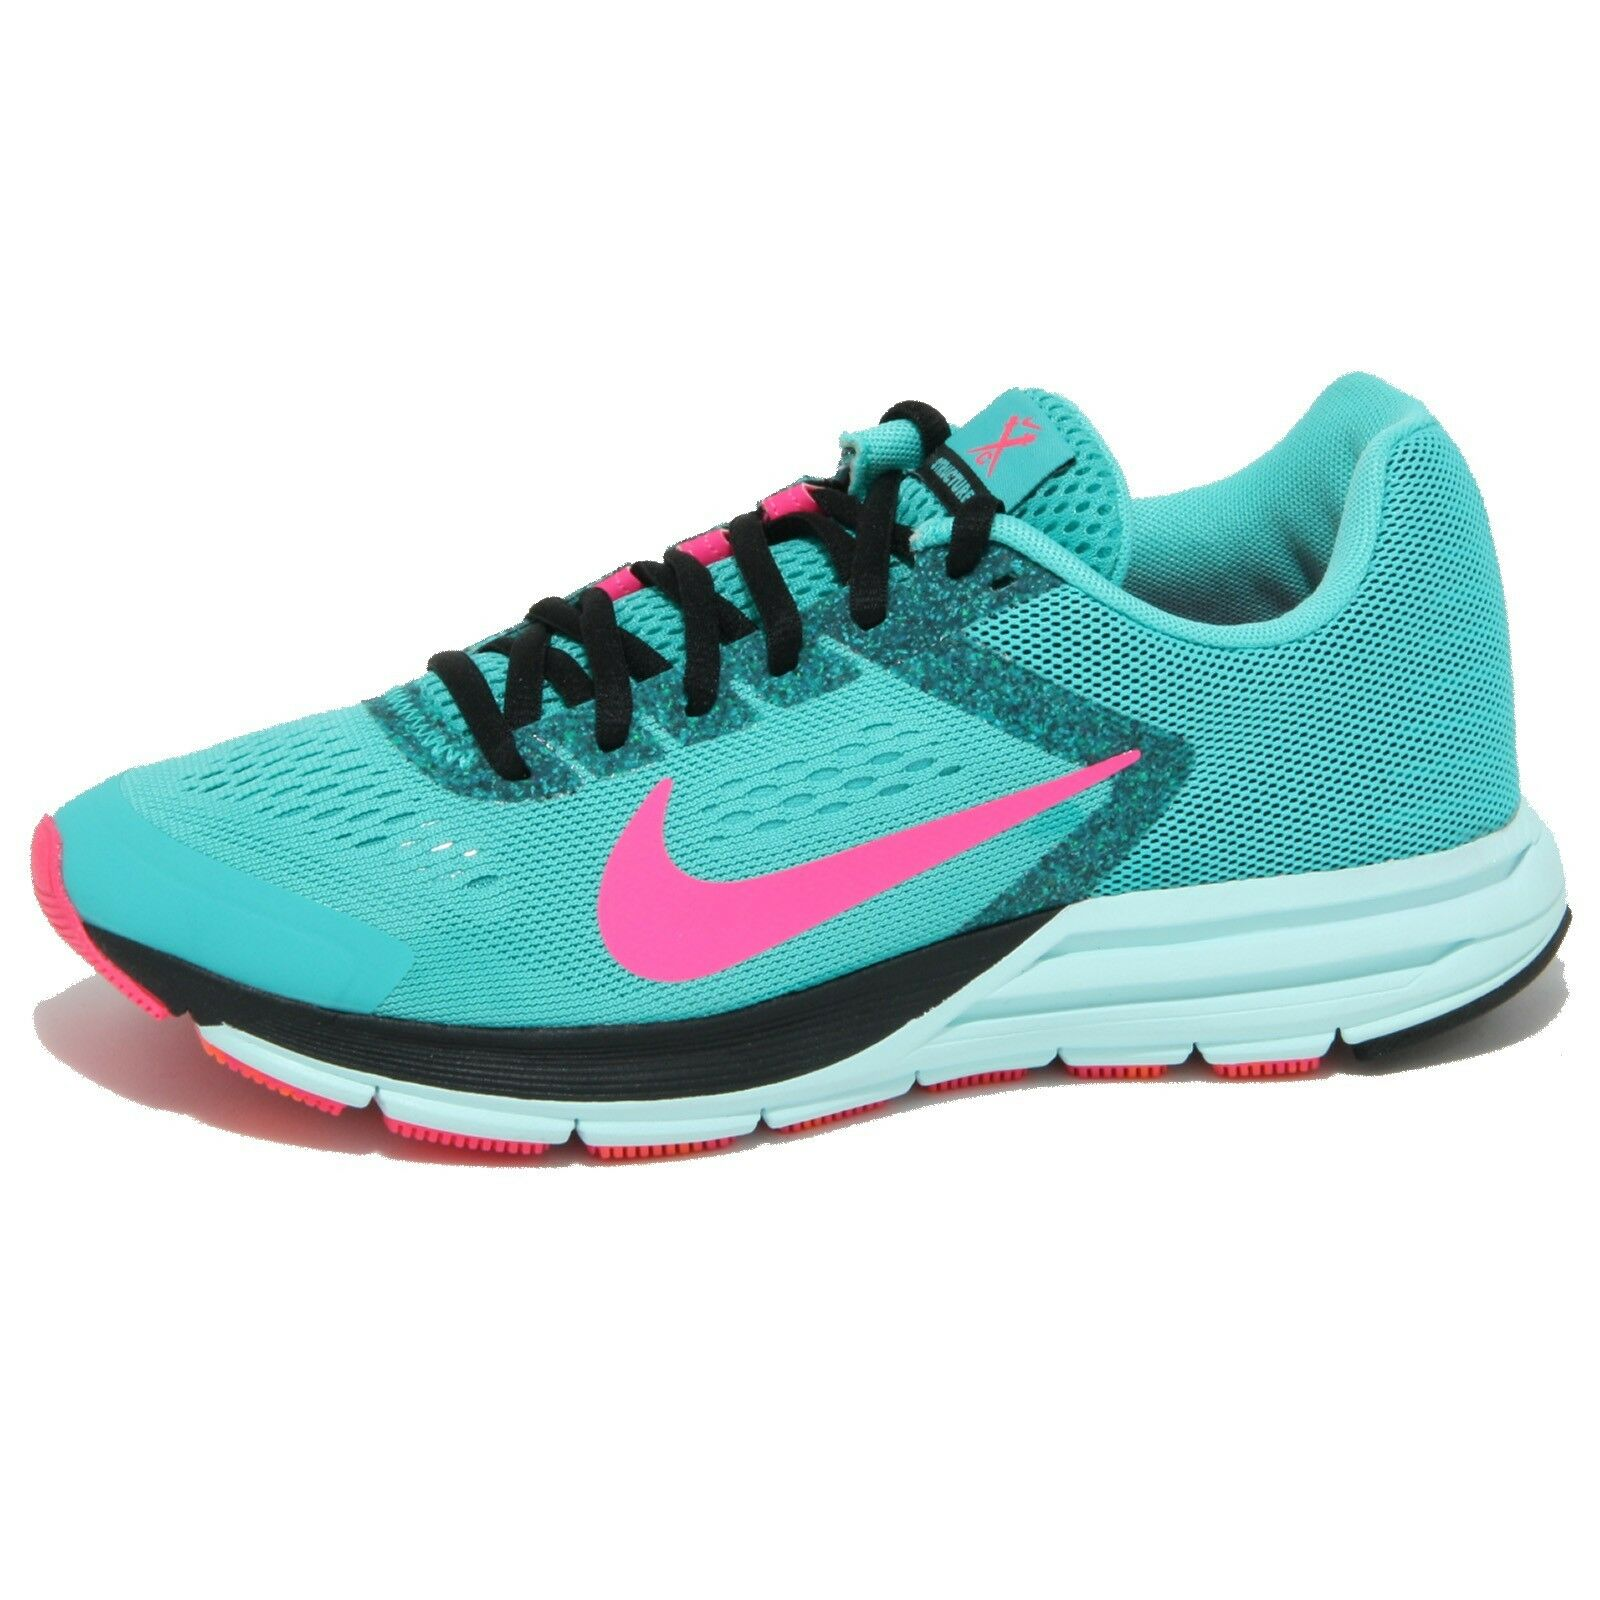 1234o Sneaker Nike Zoom Structure green shoes woman shoes women